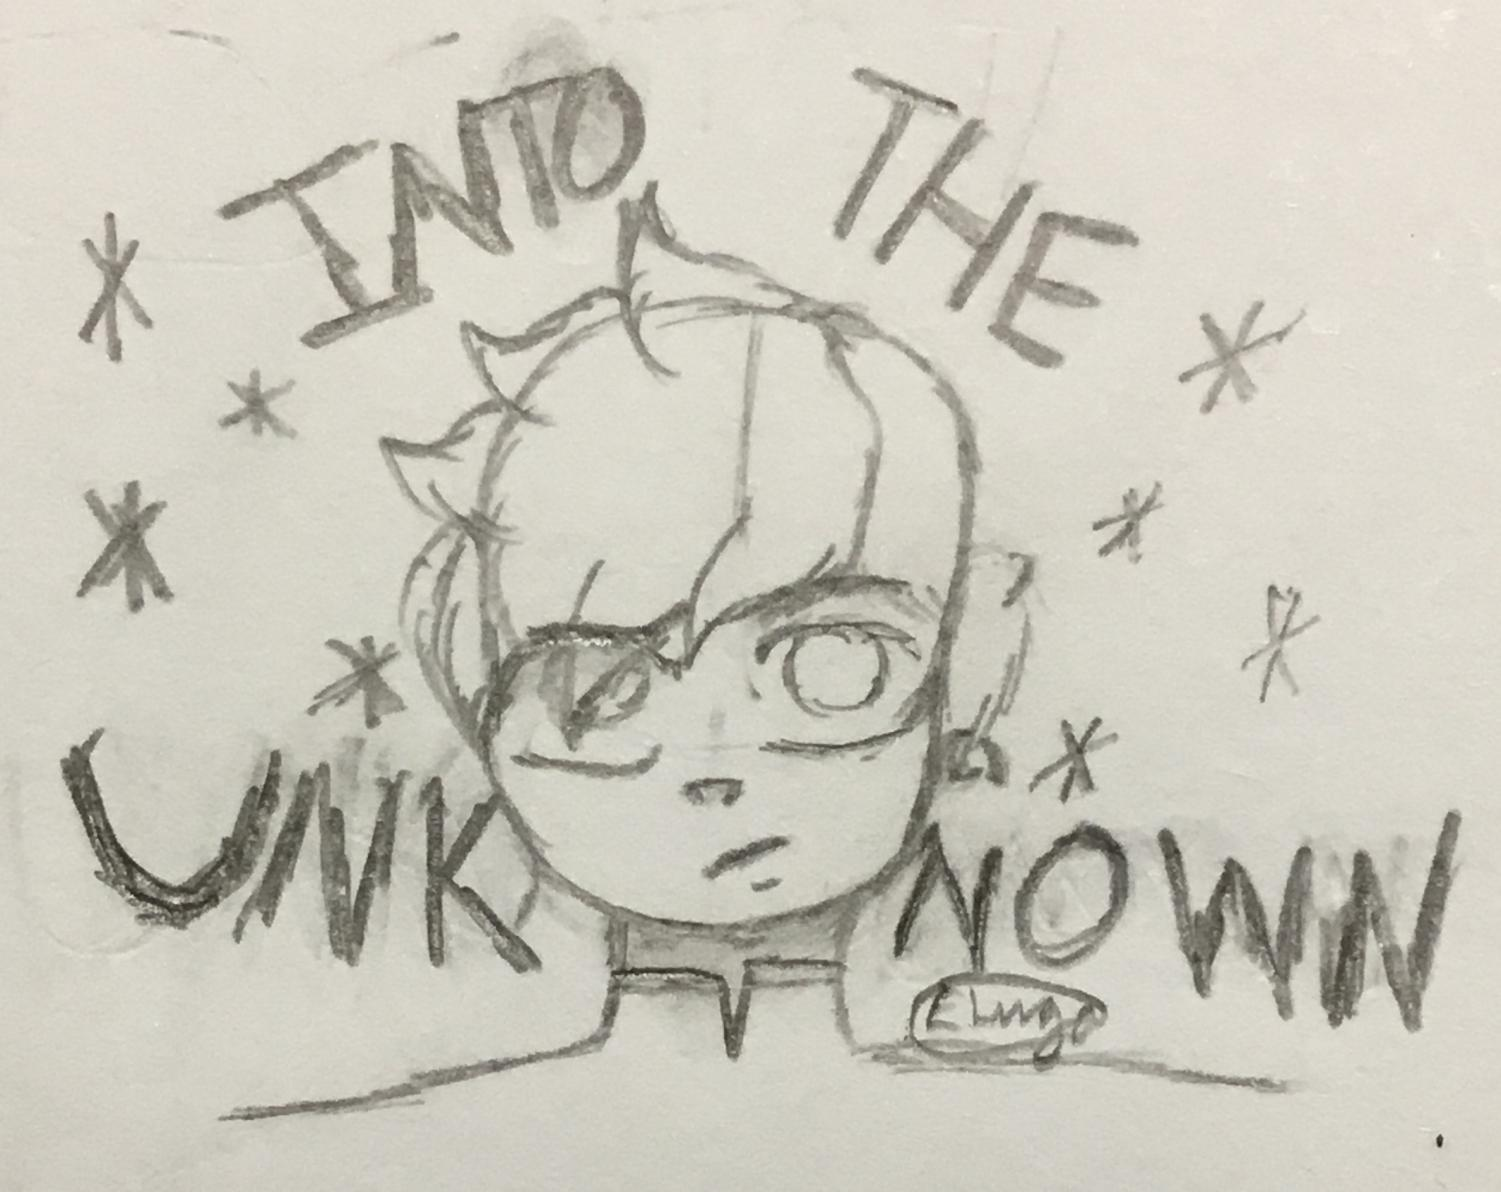 This is an image from a set of rough sketches I decided to make! It's inspired by the Frozen 2 song, Into the Unknown.